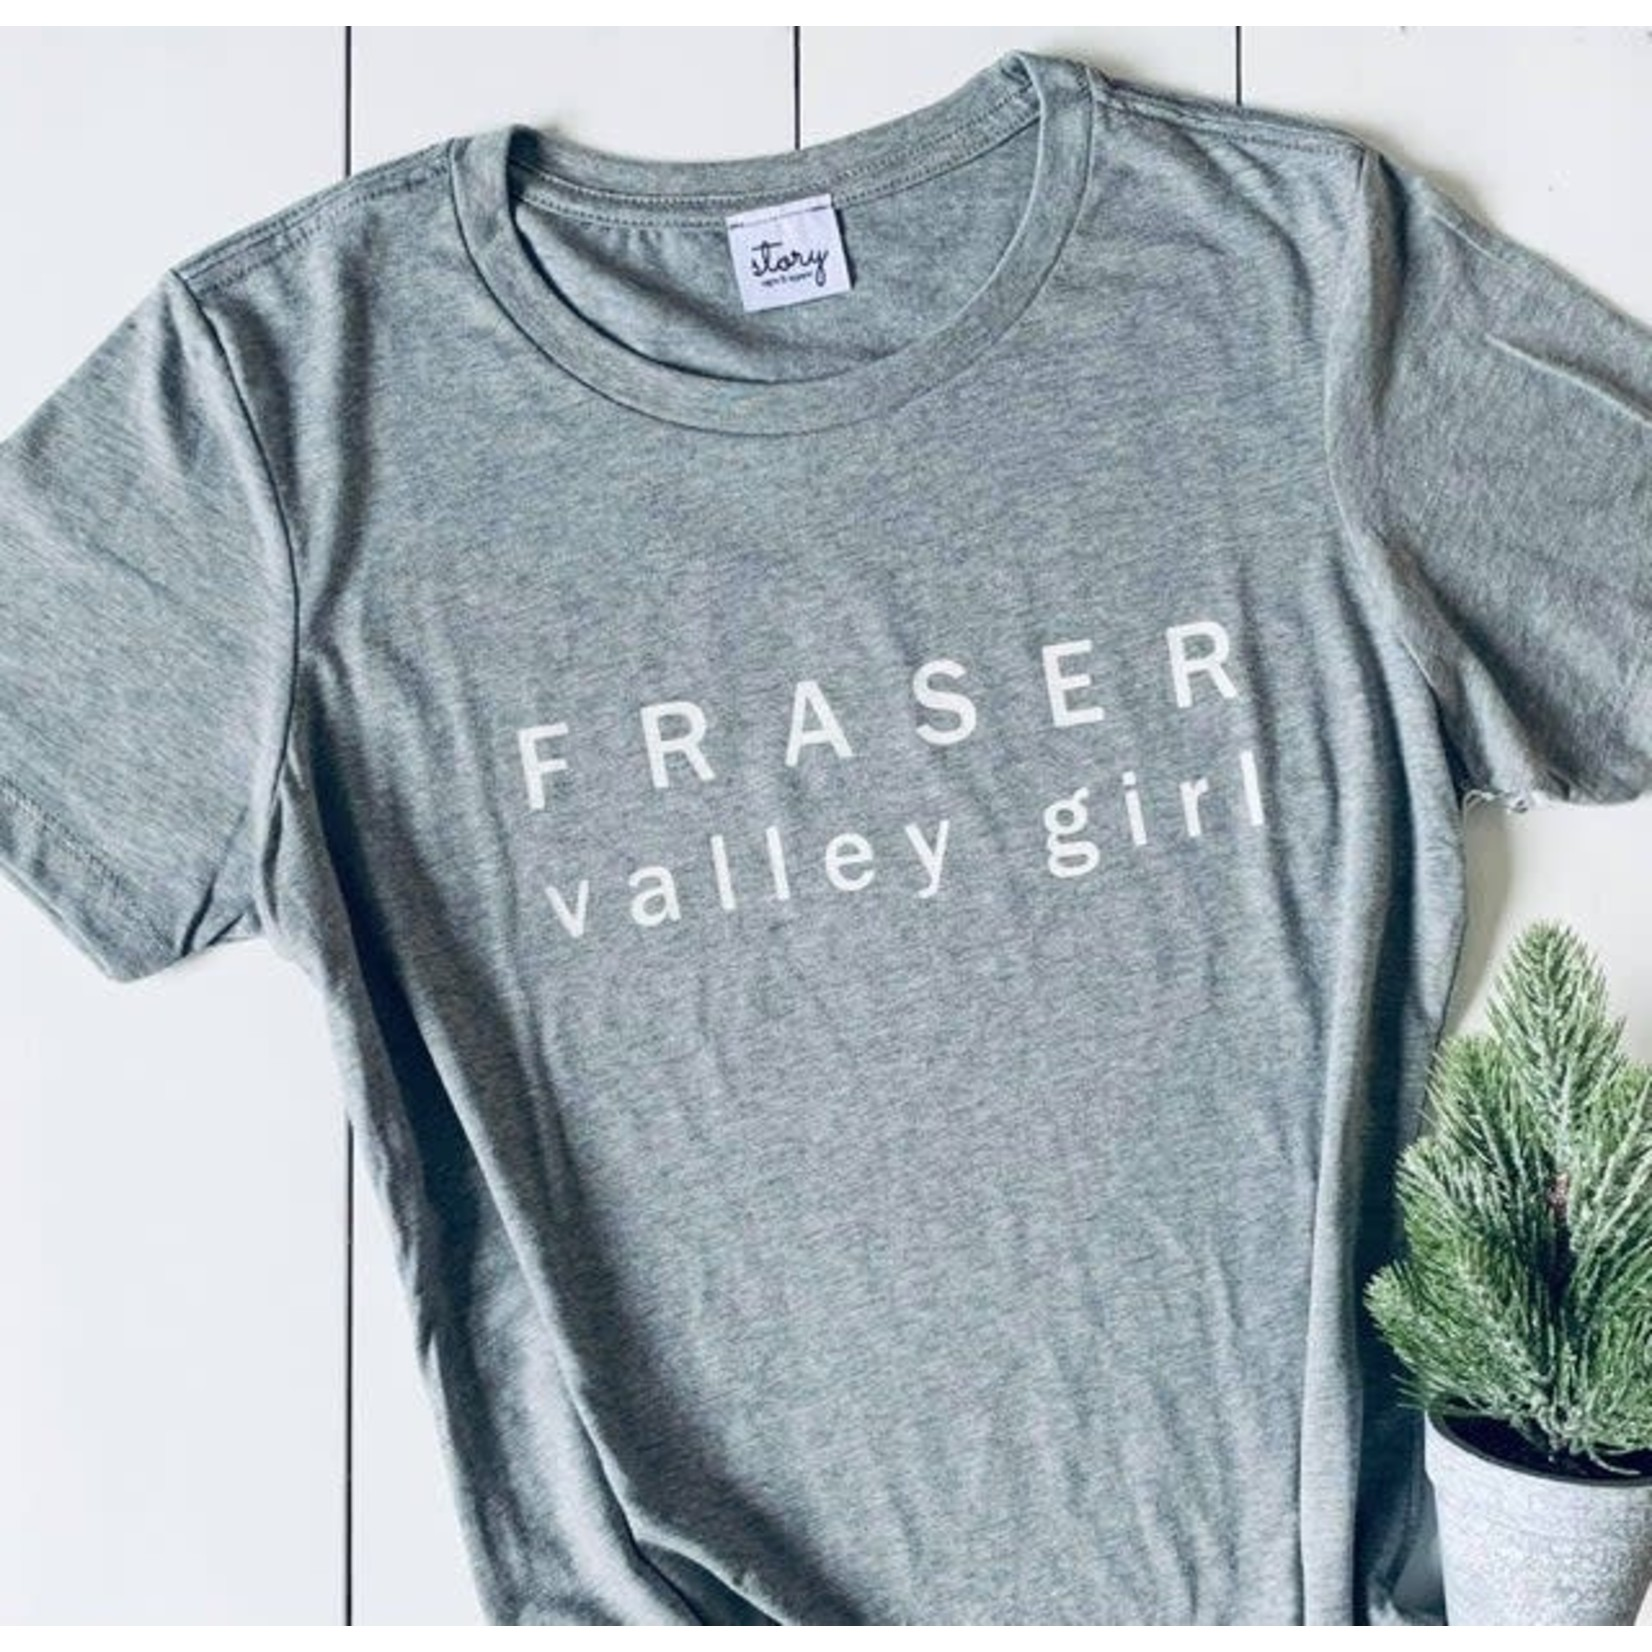 Fraser Valley Girl Tee